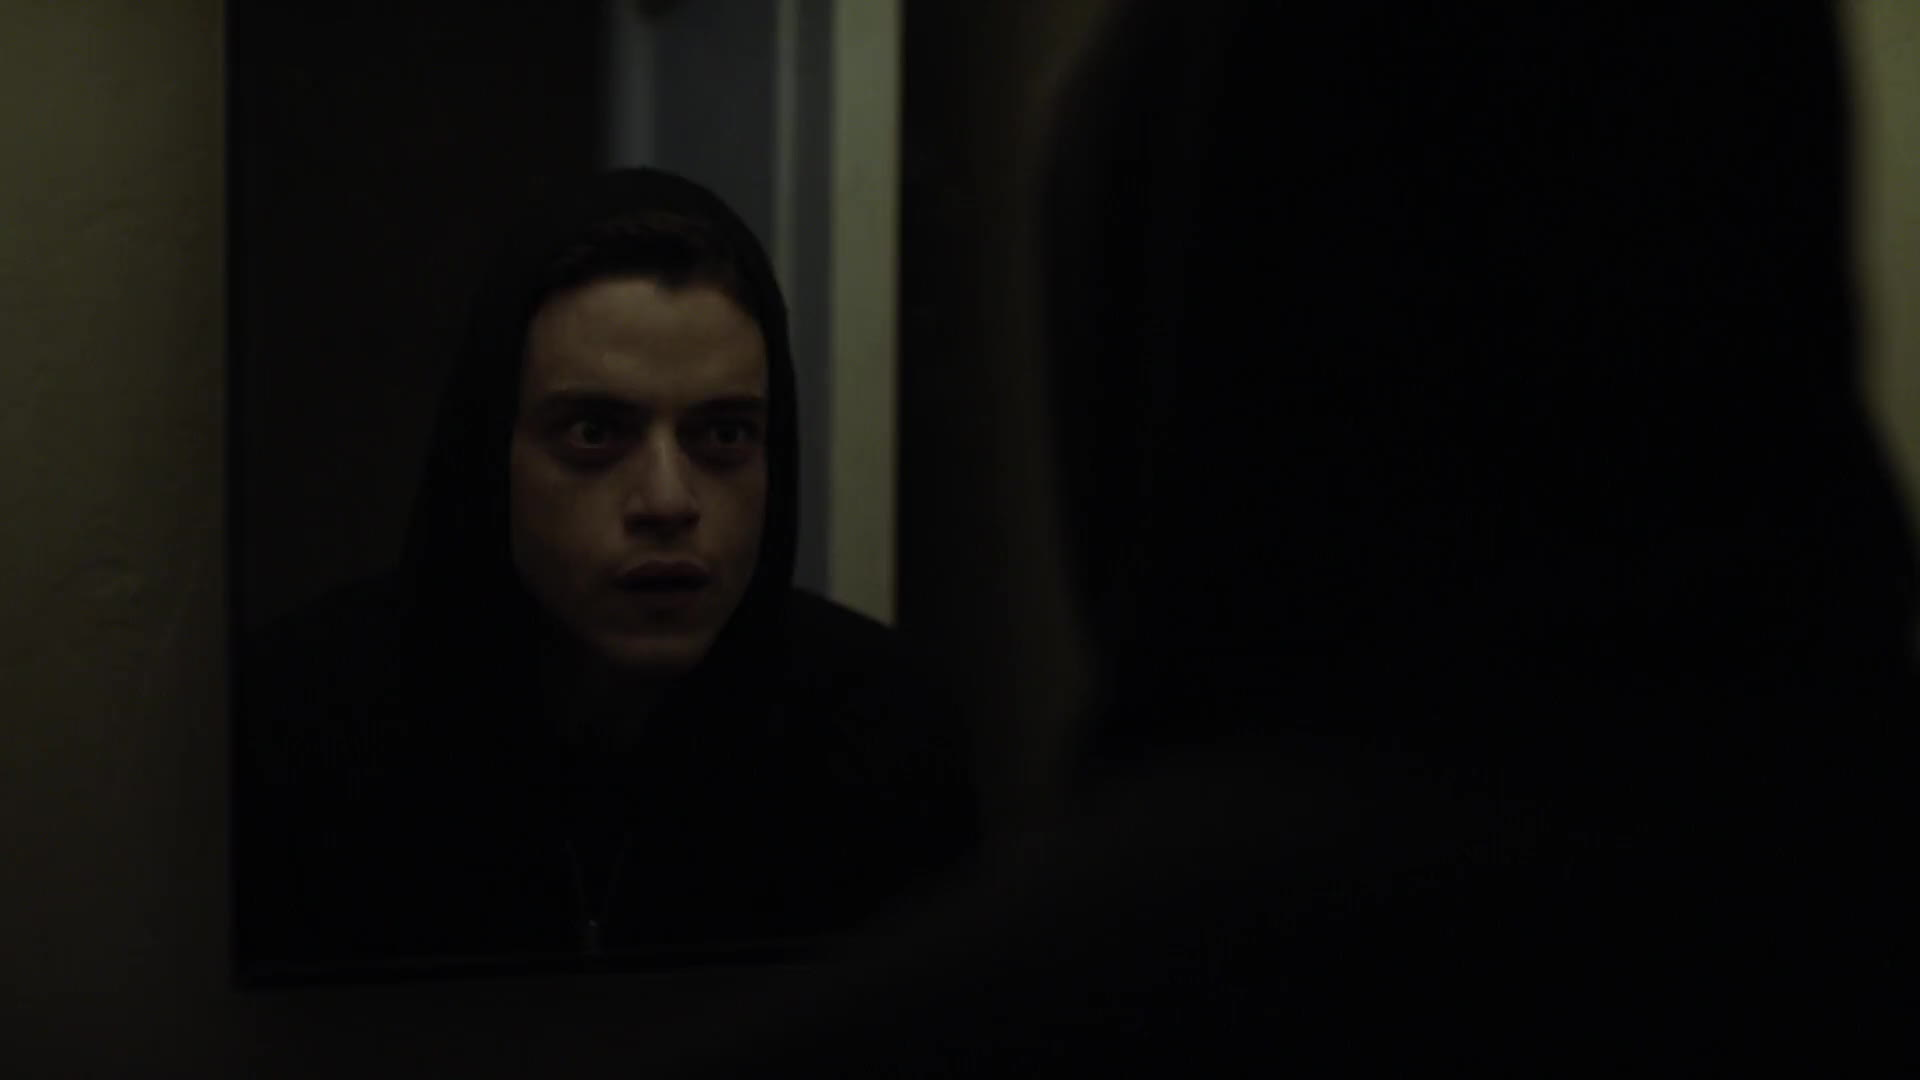 MrRobot, mirror, mr robot, Is it your reflection staring back? GIFs